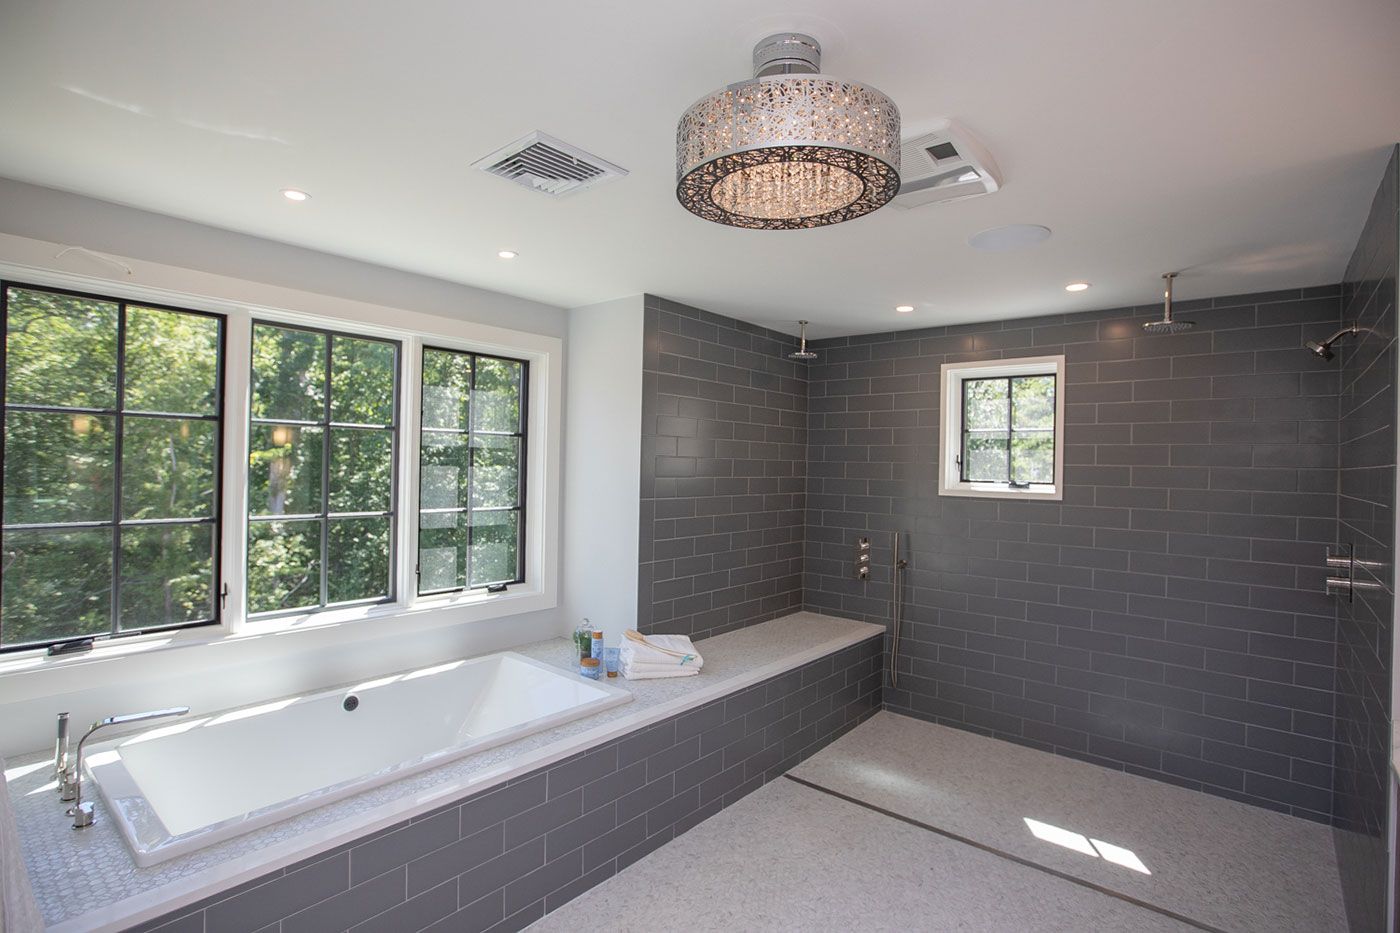 Master bathroom of a specially adapted smart home, constructed through the R.I.S.E. program of the Gary Sinise Foundation